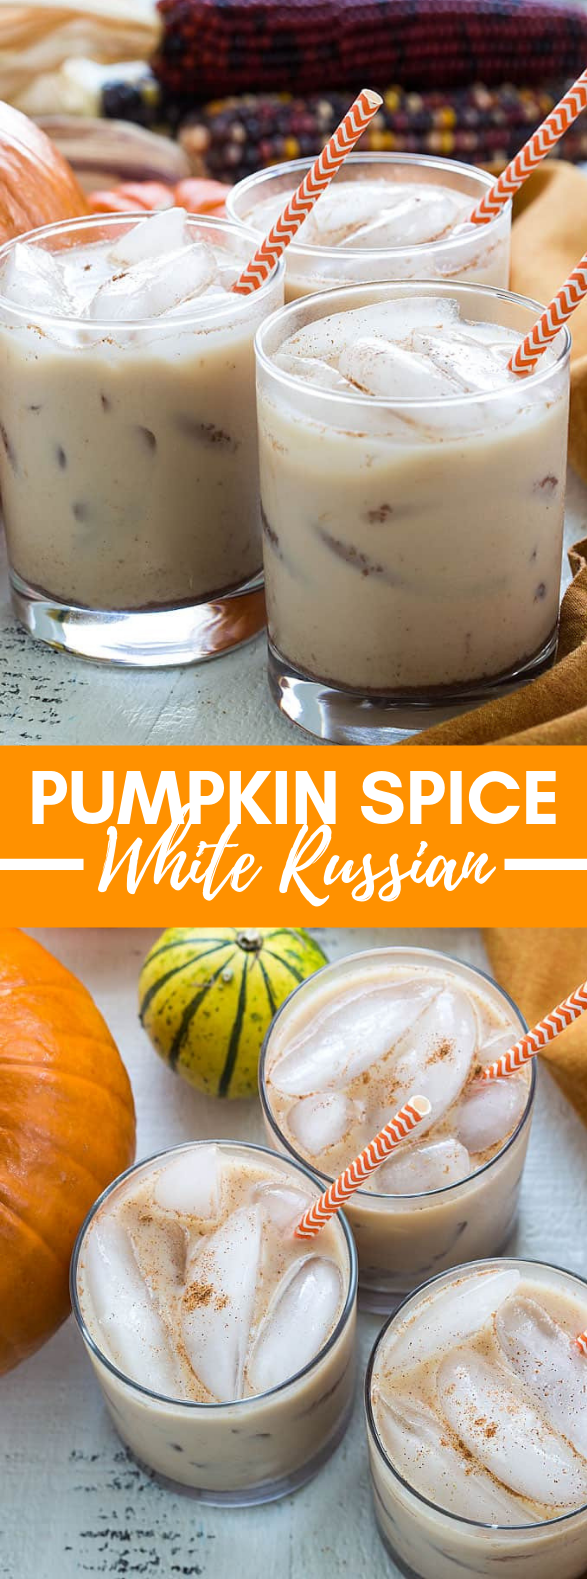 PUMPKIN SPICE WHITE RUSSIANS #drinks #falldrink